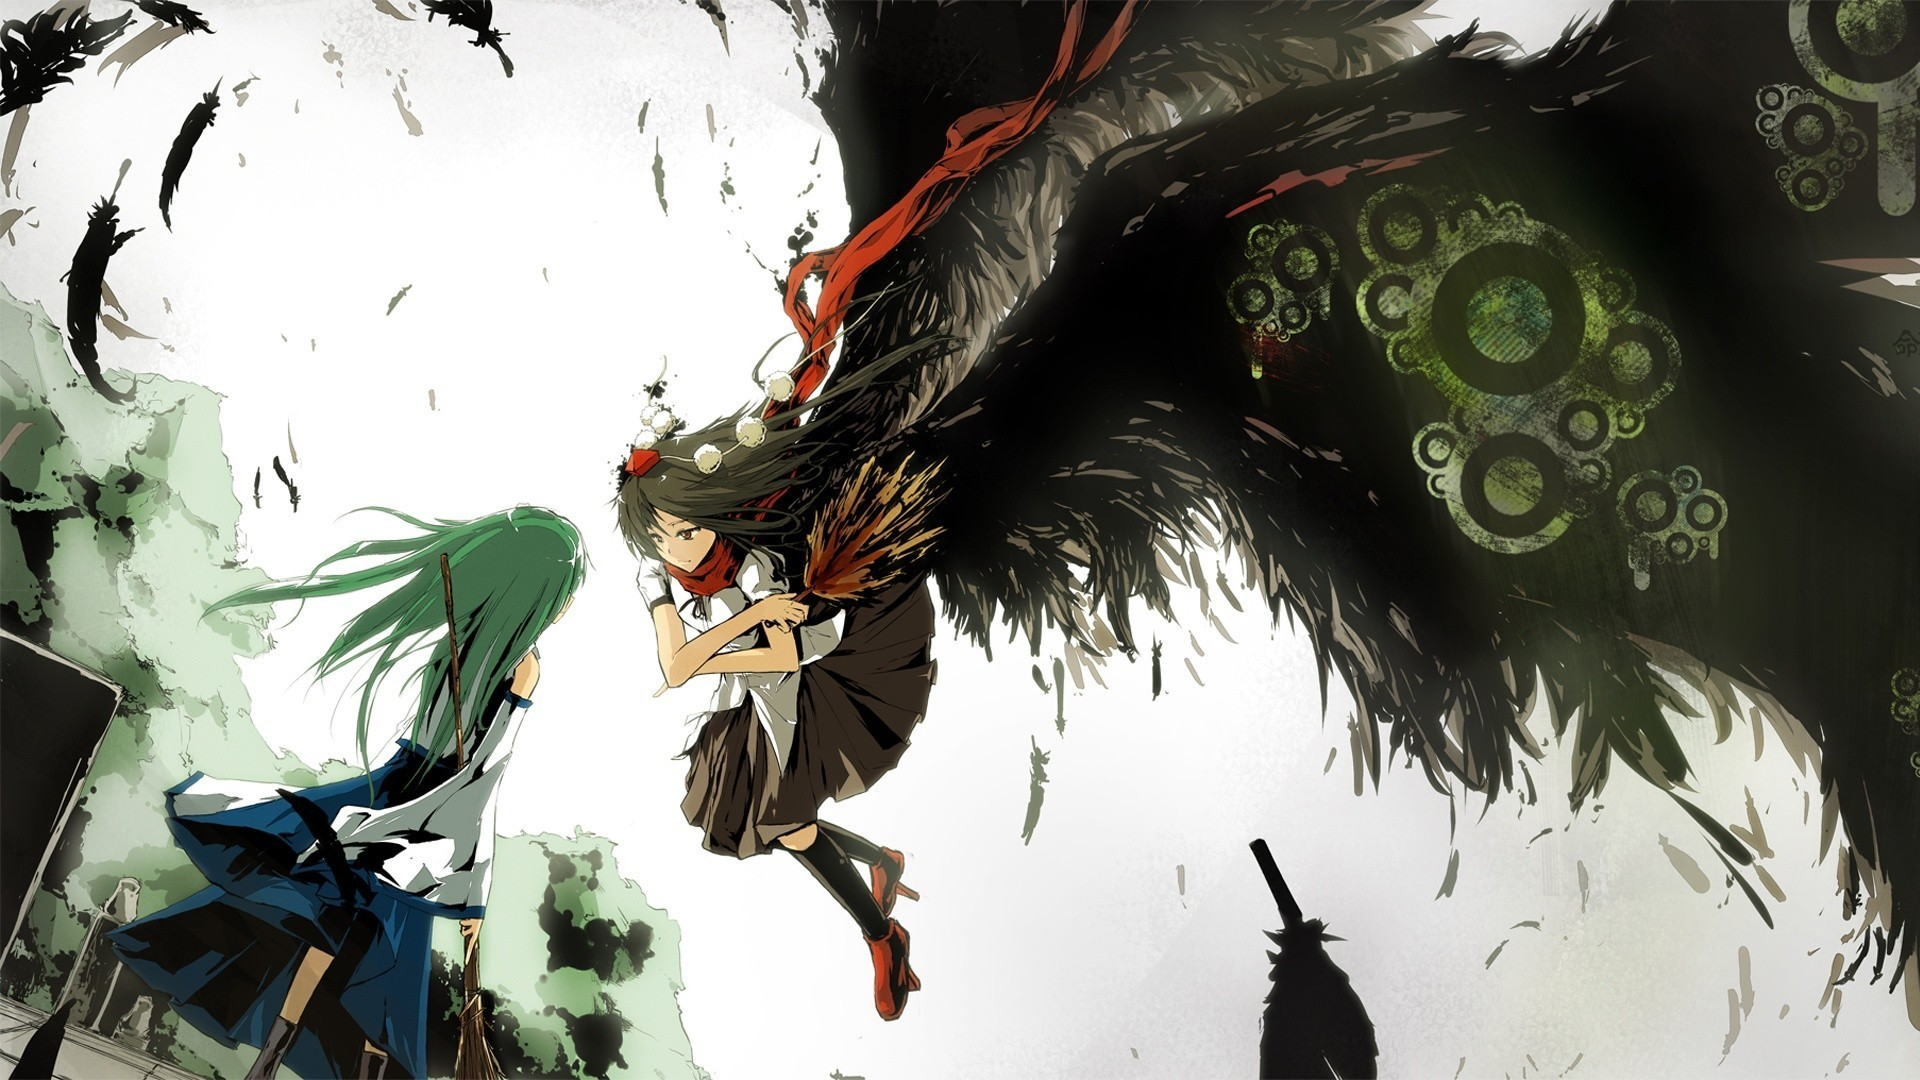 Touhou Images HD Wallpaper And Background Photos